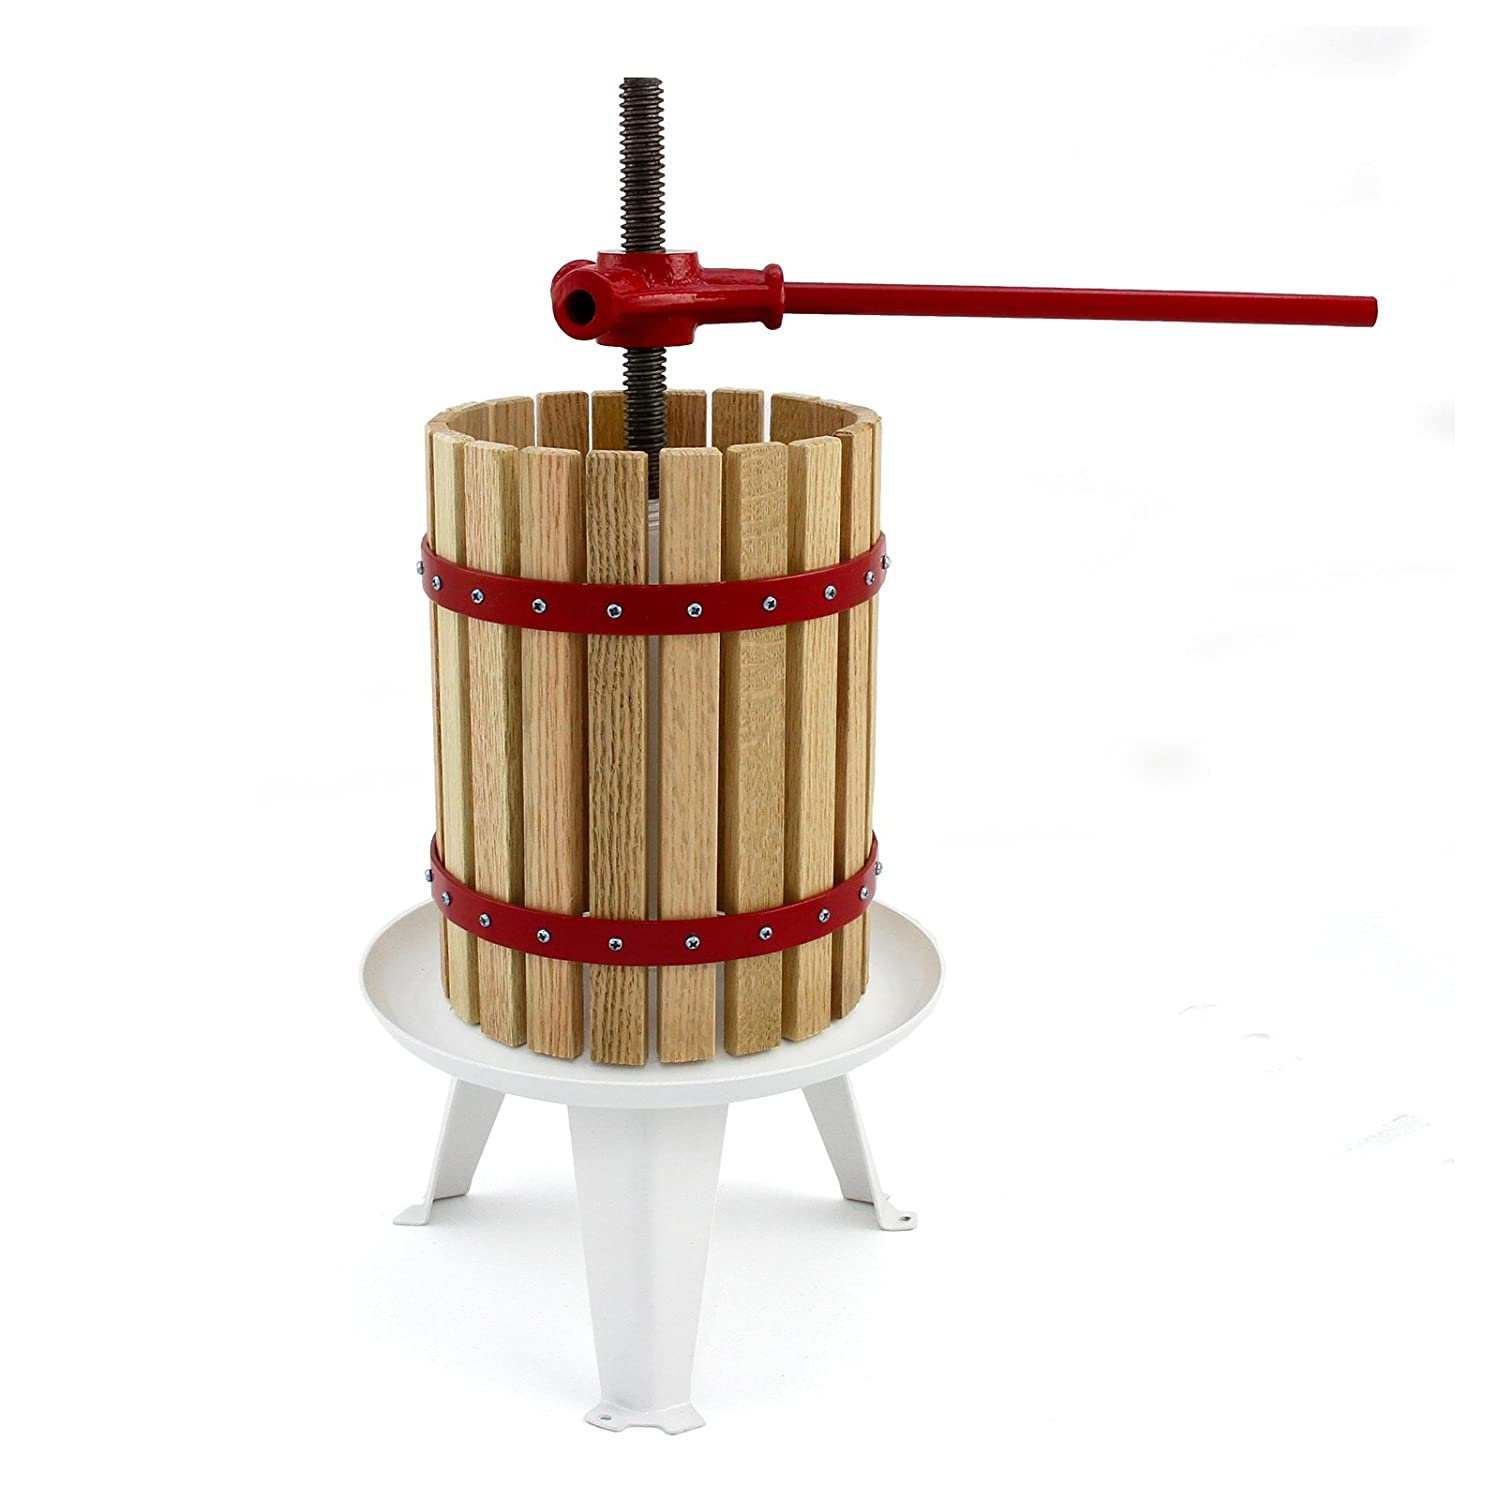 KuKoo Manual Apple Fruit Press for Homemade Juice, Wine & Cider Making, 6 Litre, Wooden MonsterShop